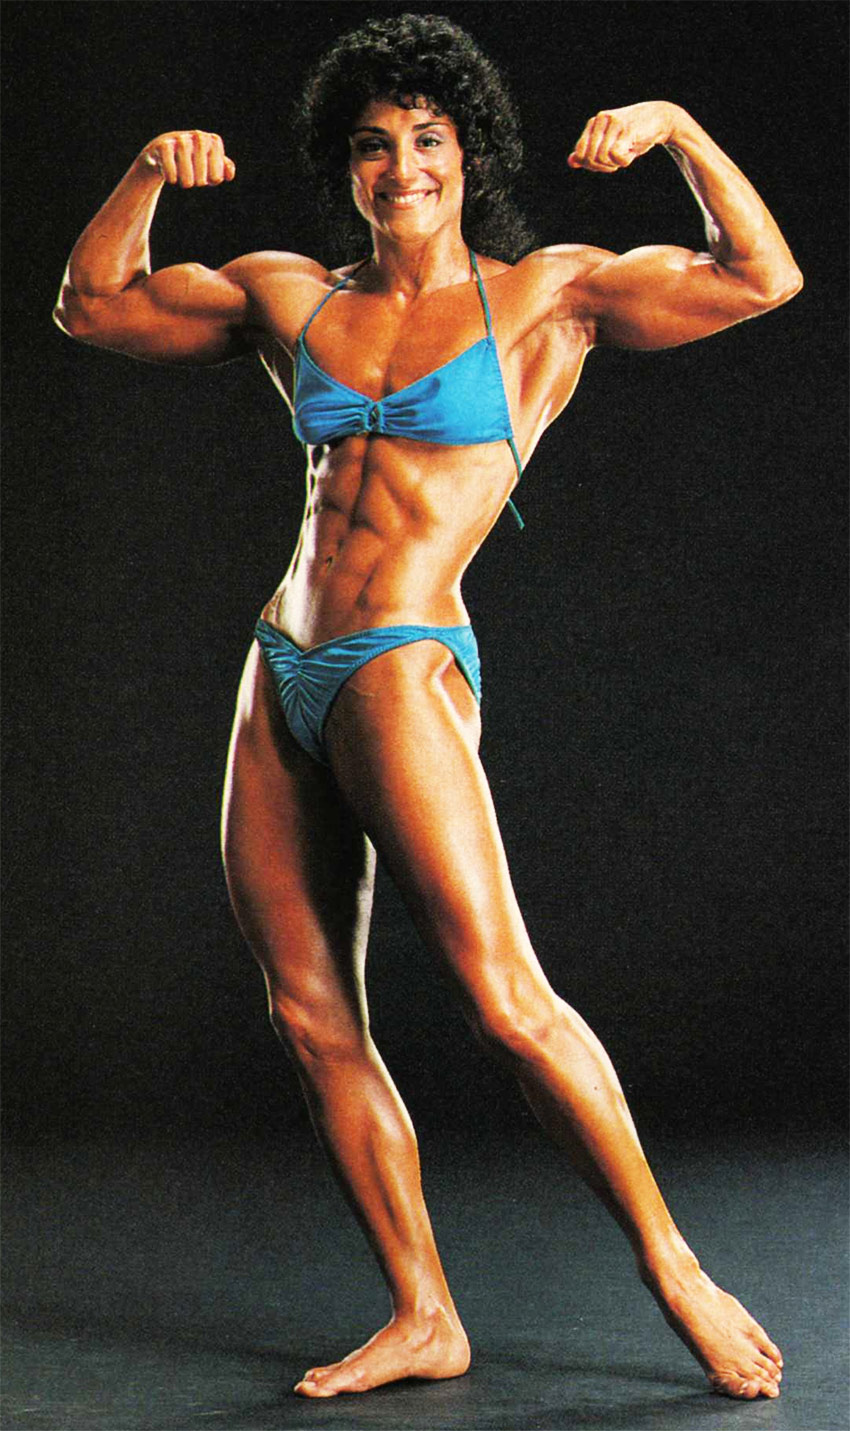 Profile picture of Laura Combes posing in her stage bikini, flexing her biceps and displaying her trademark figure.